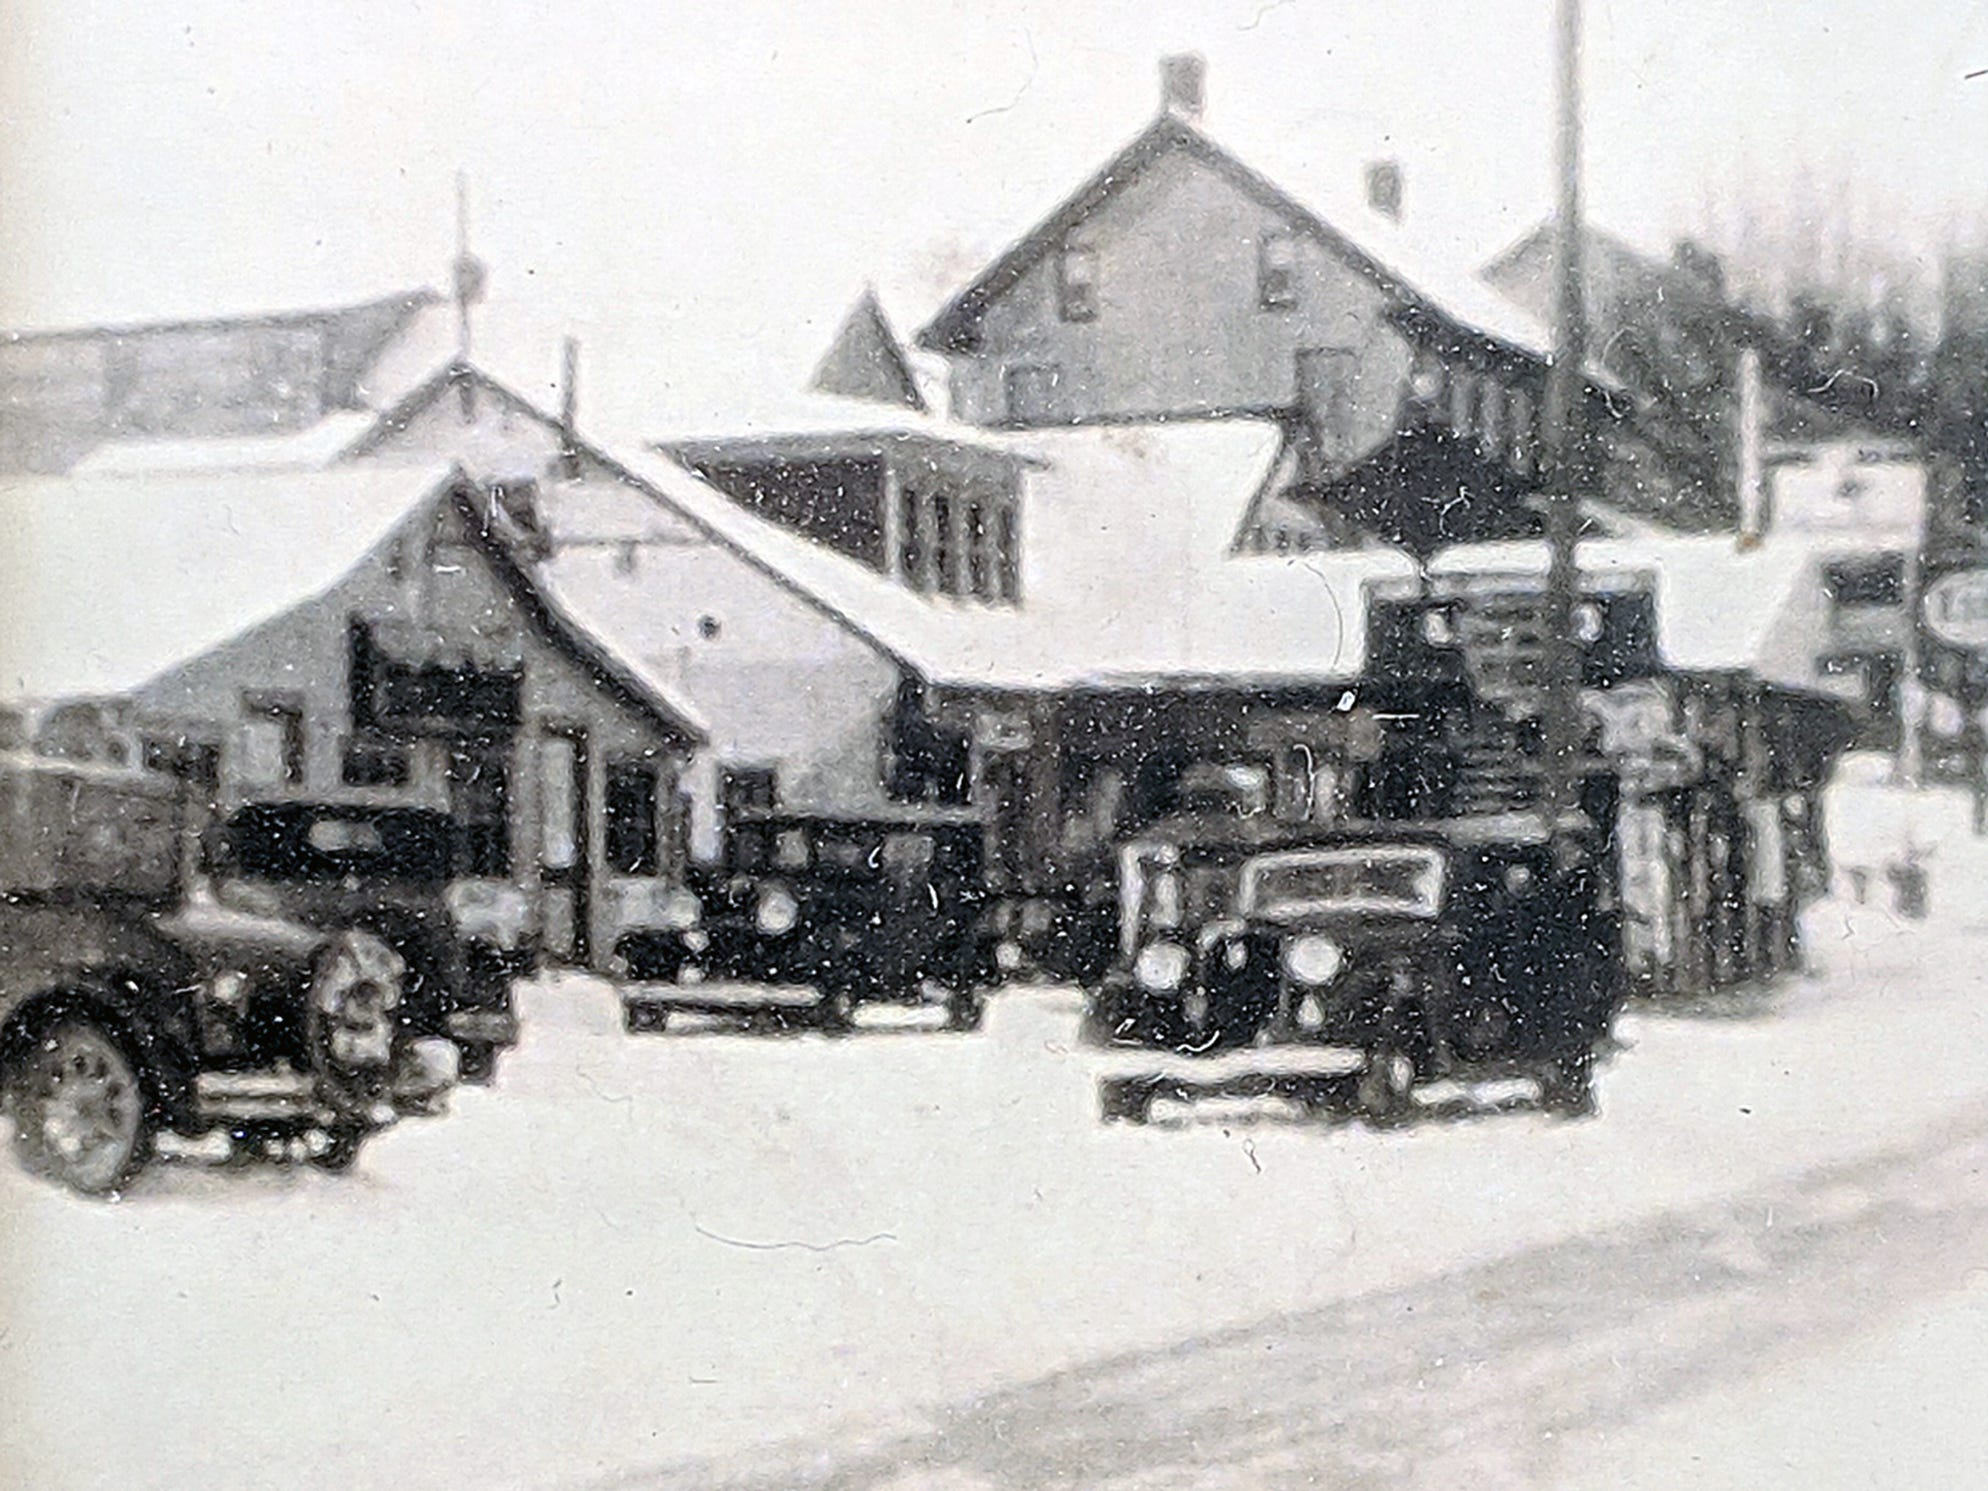 This was Bruce Smith's store in Jacobus as it looked in winter 1931.